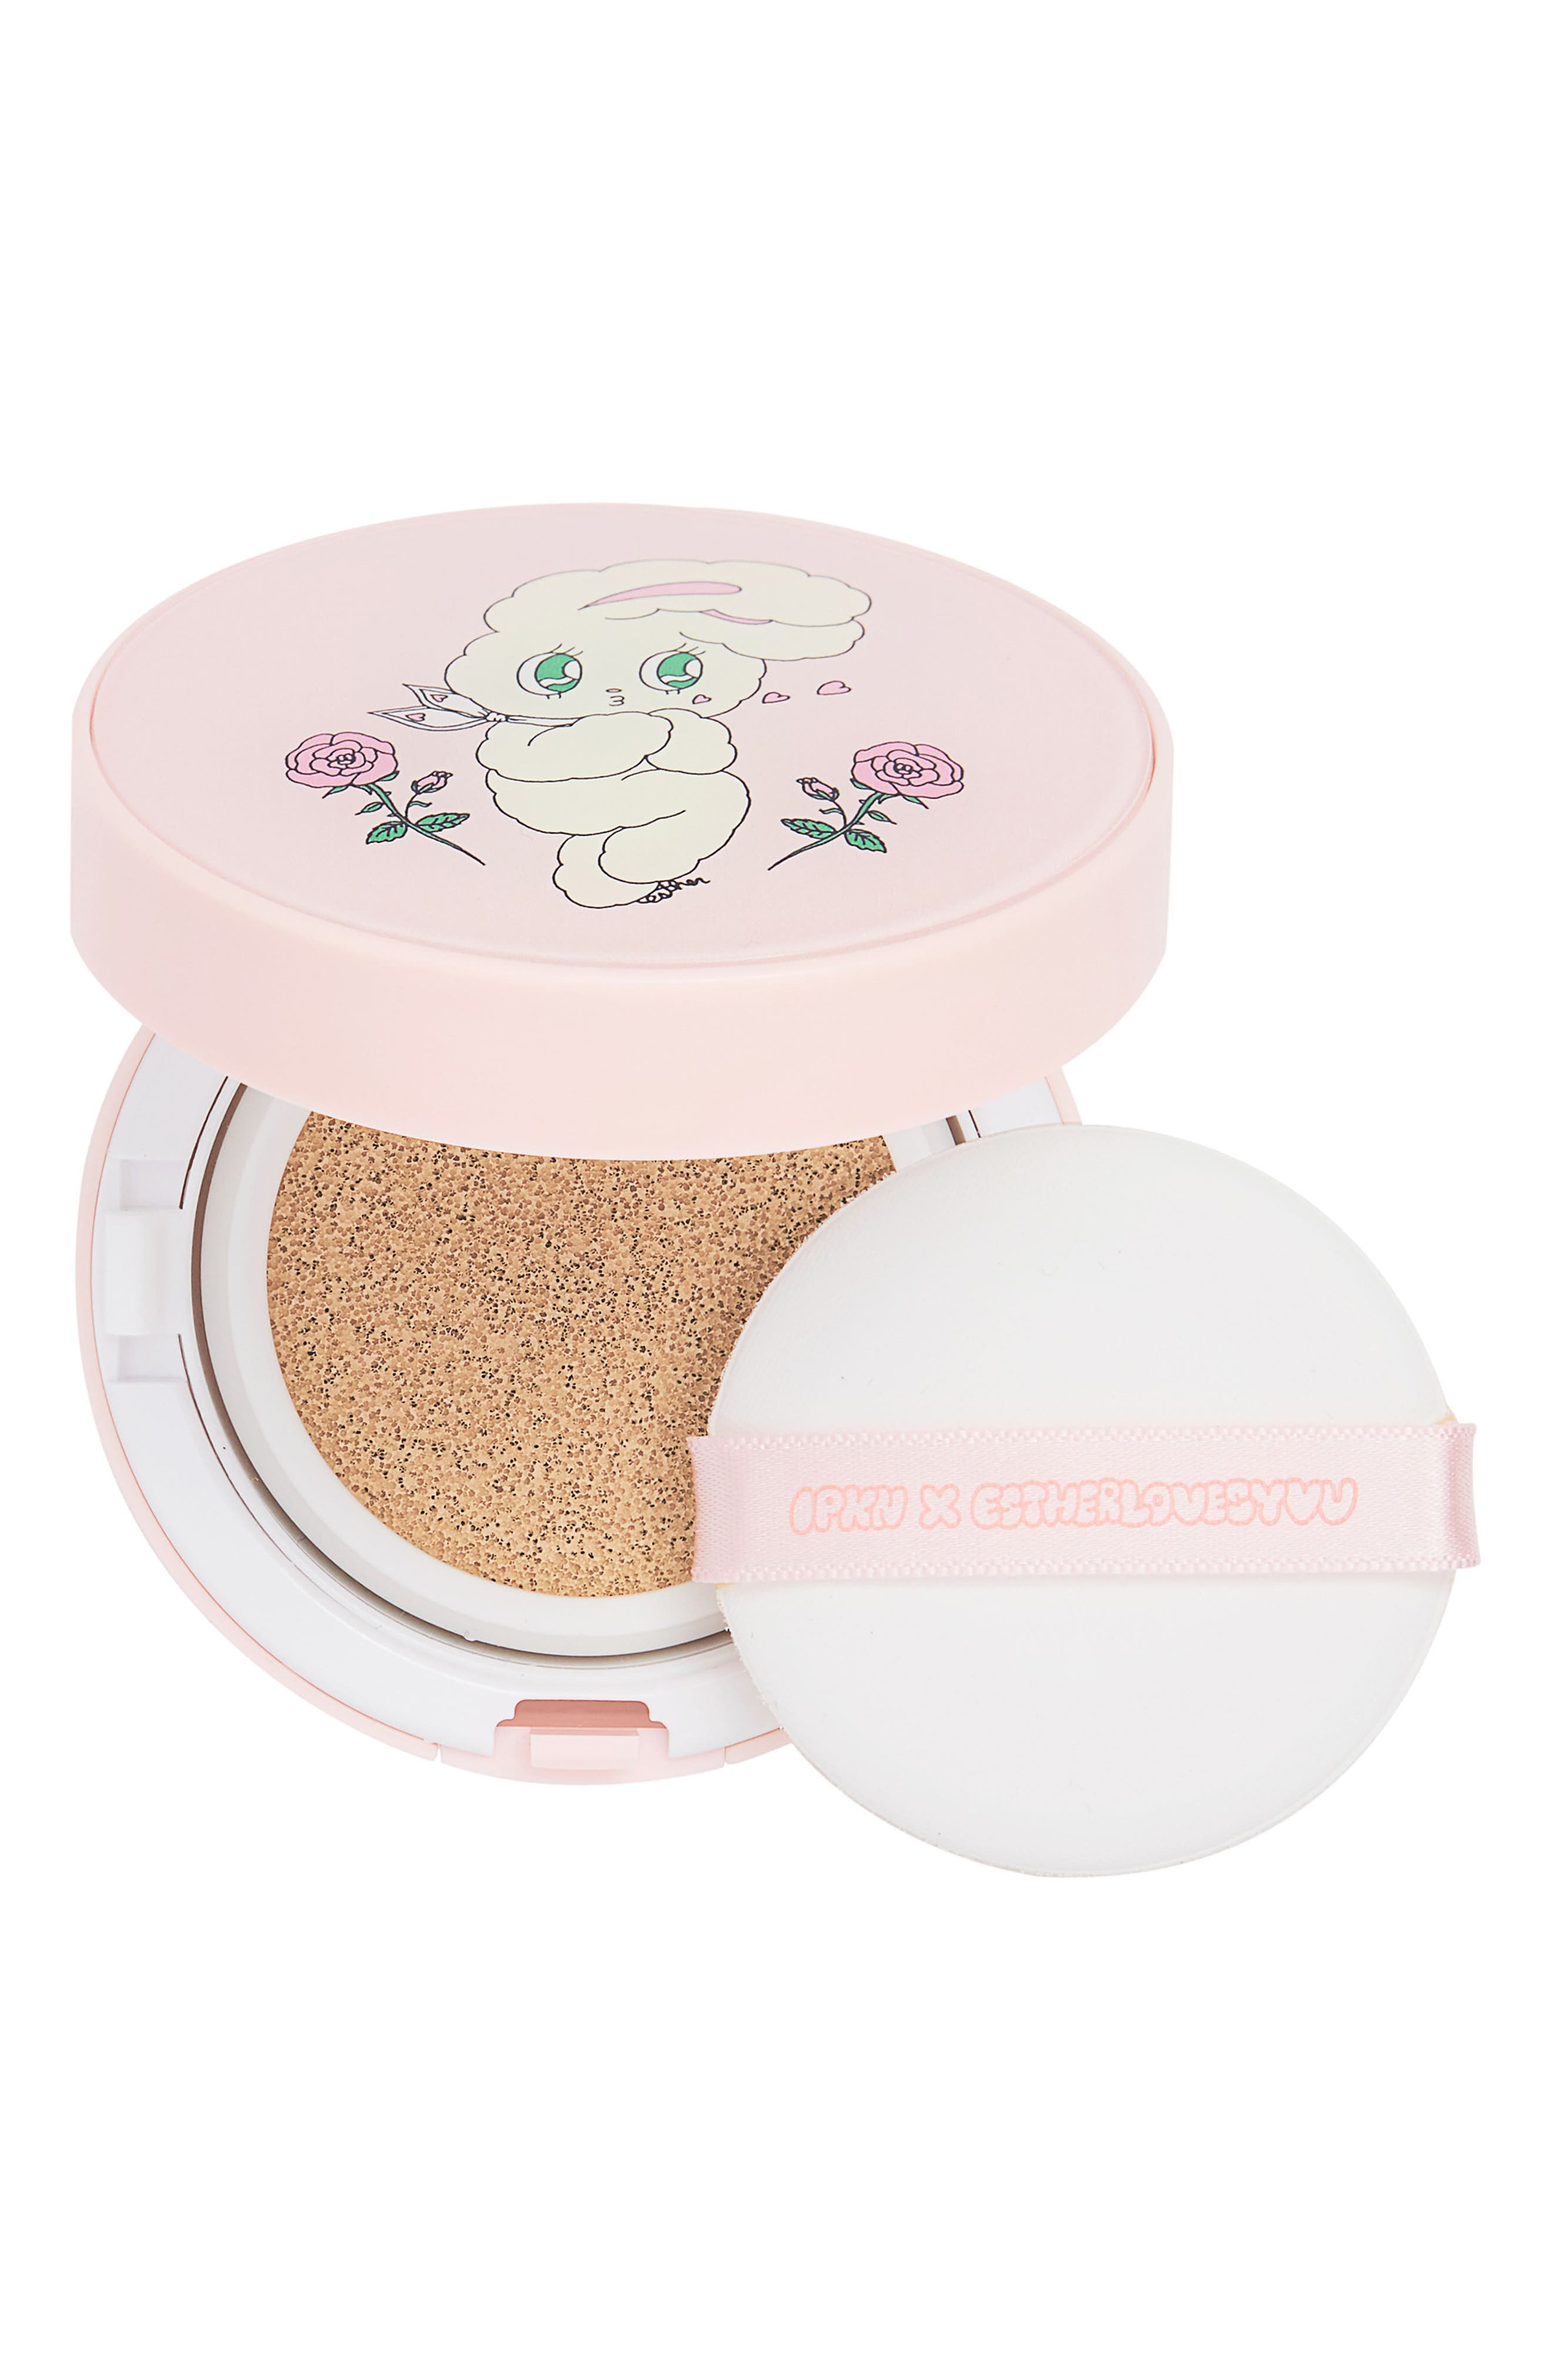 IPKN Twinkle Multi-Tasking Foundation Cushion SPF 50